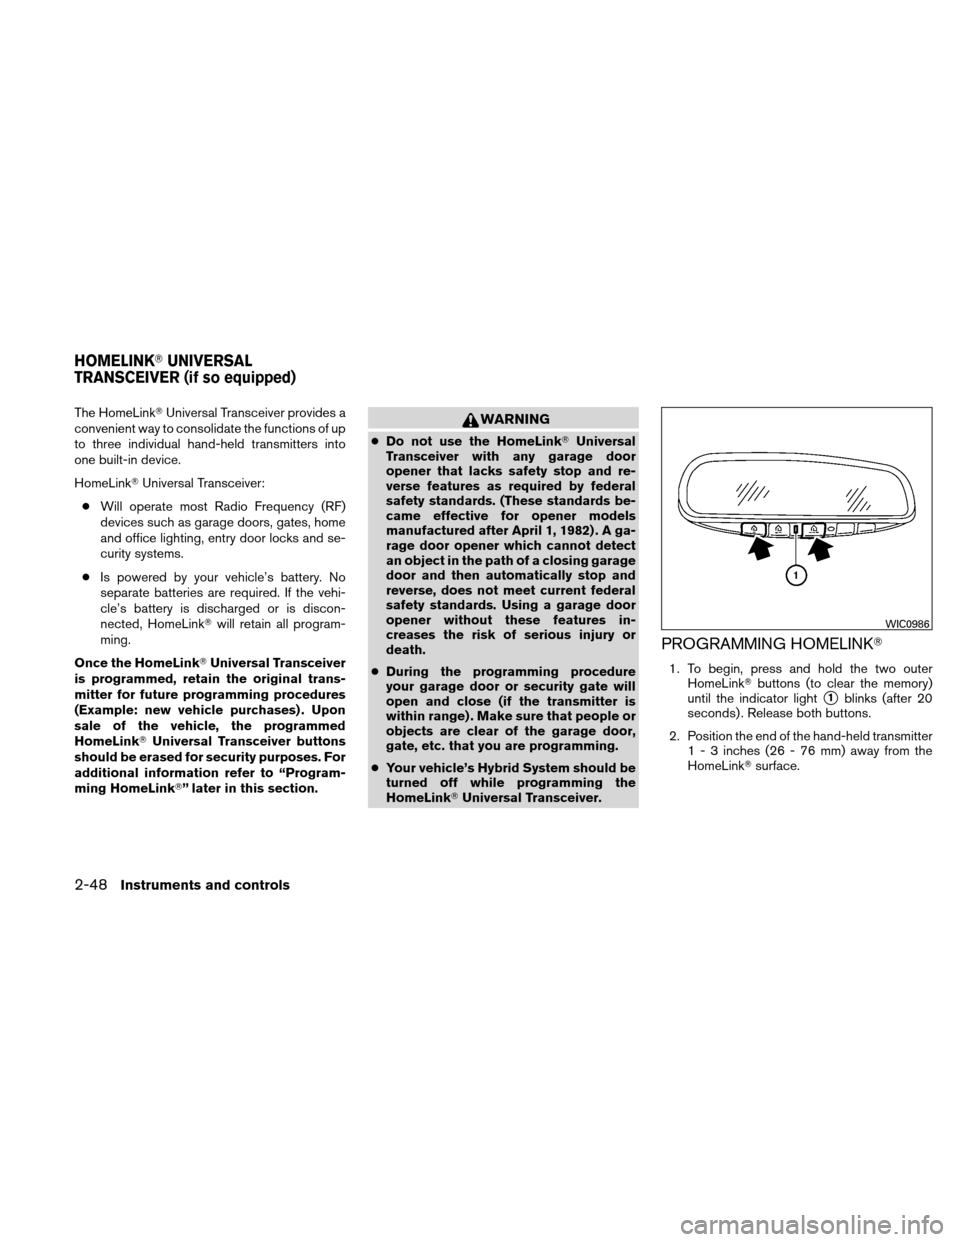 NISSAN ALTIMA HYBRID 2011 L32A / 4.G Owners Manual, Page 129